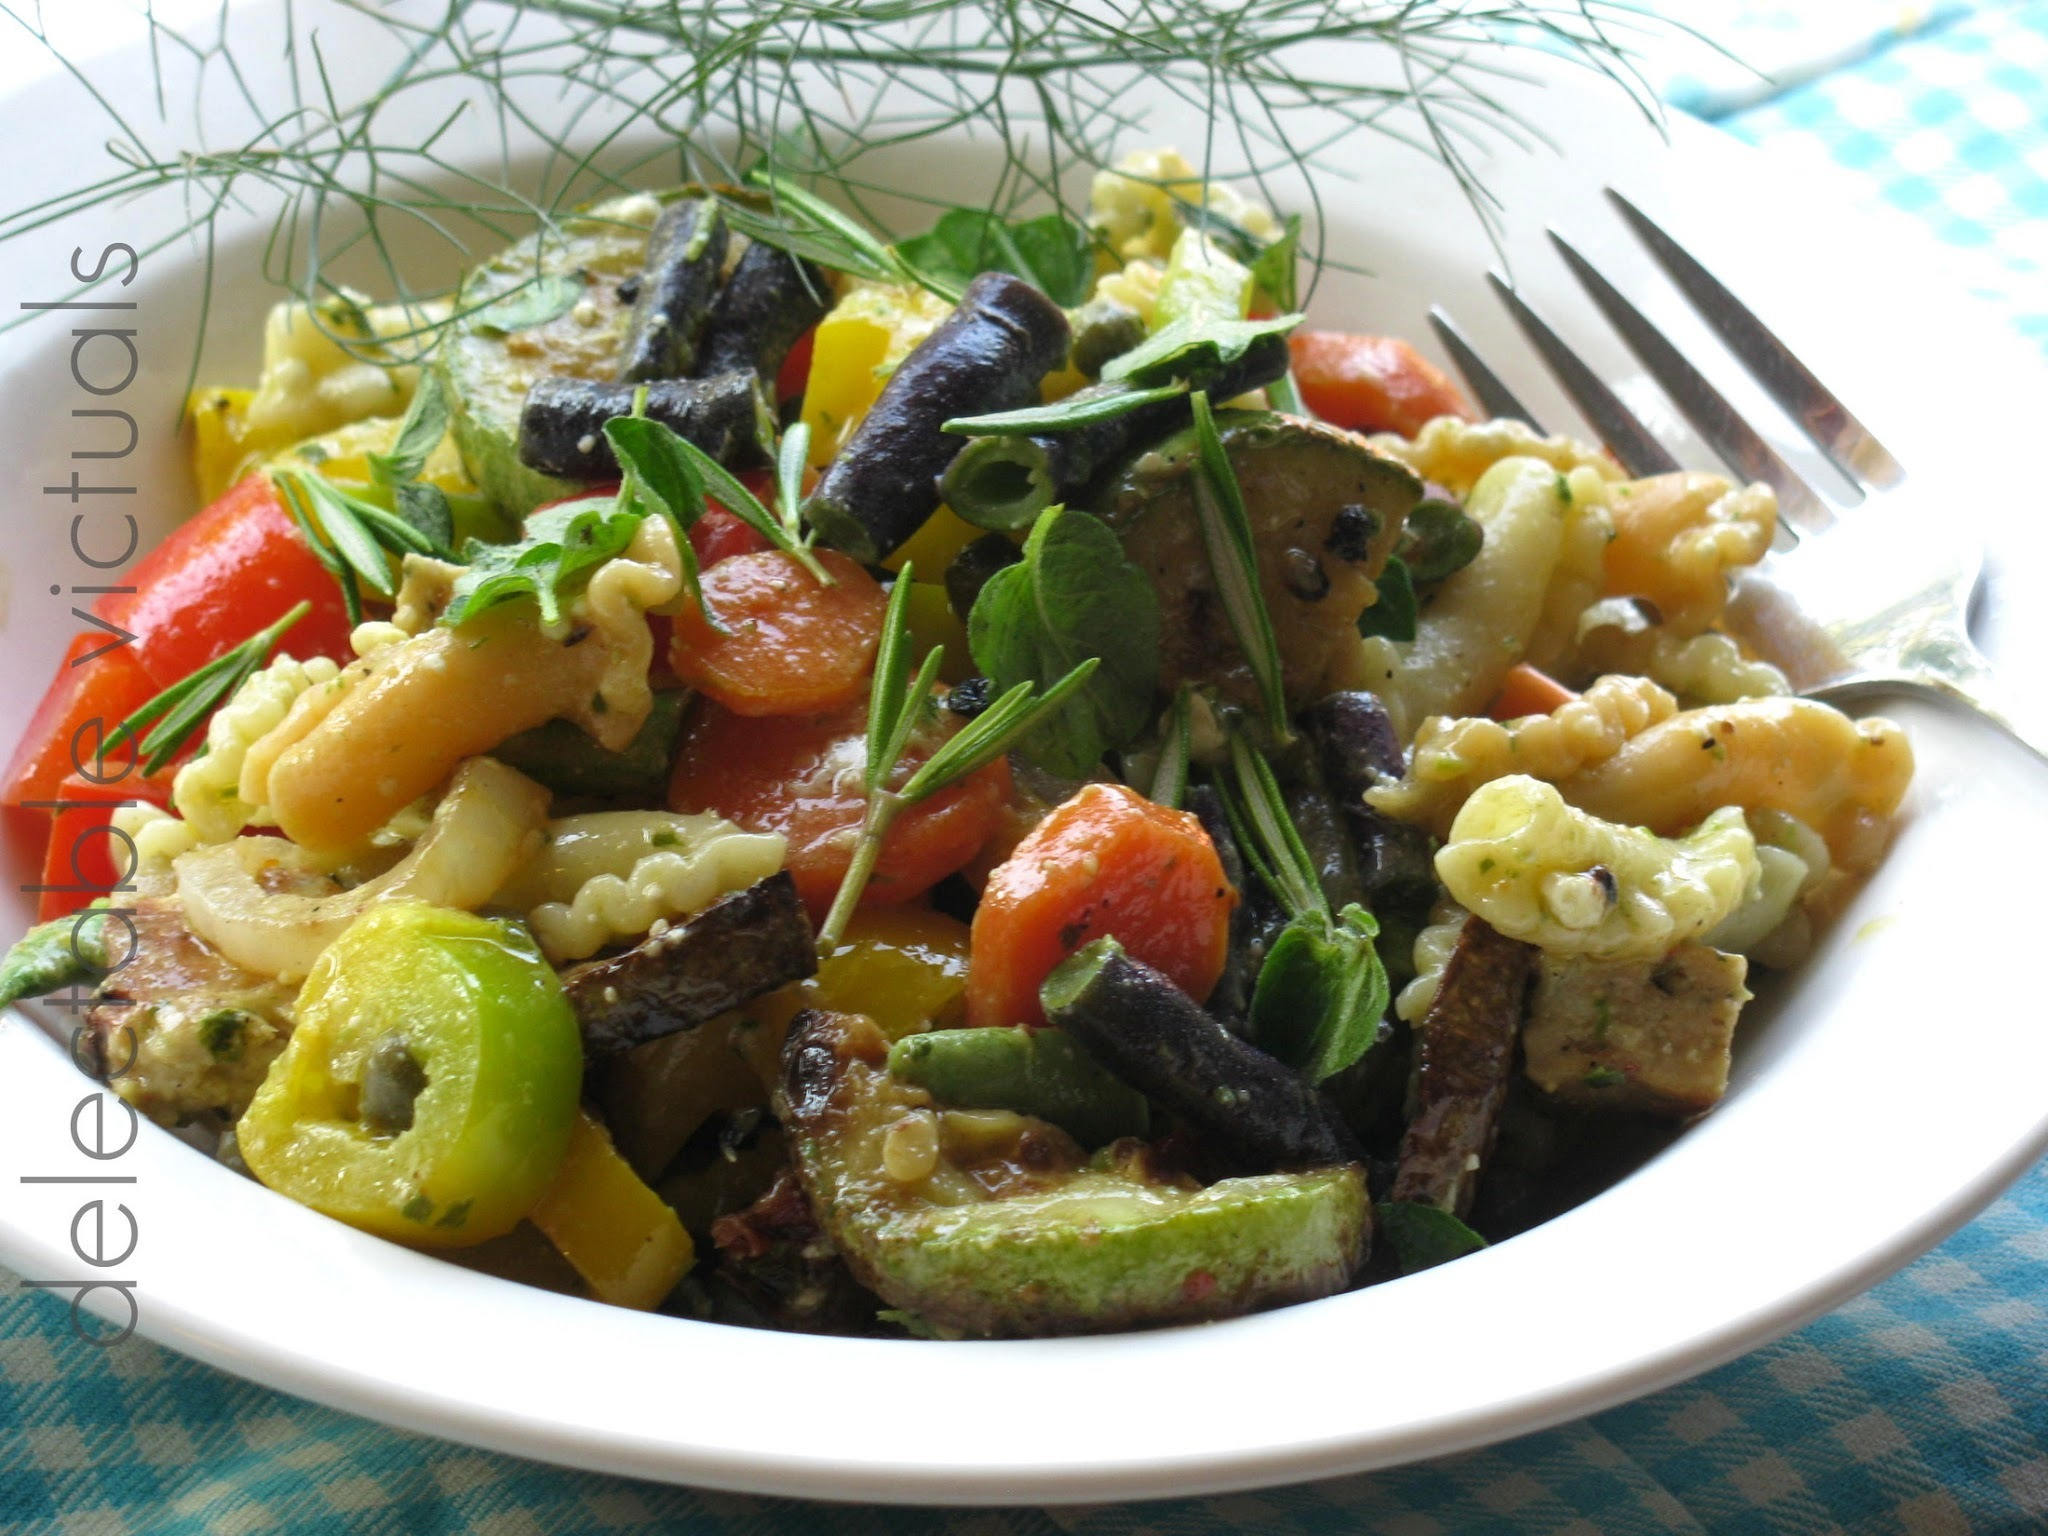 Tricolor Gigli Salad with Roasted Squash, Bell Peppers and Purple beans